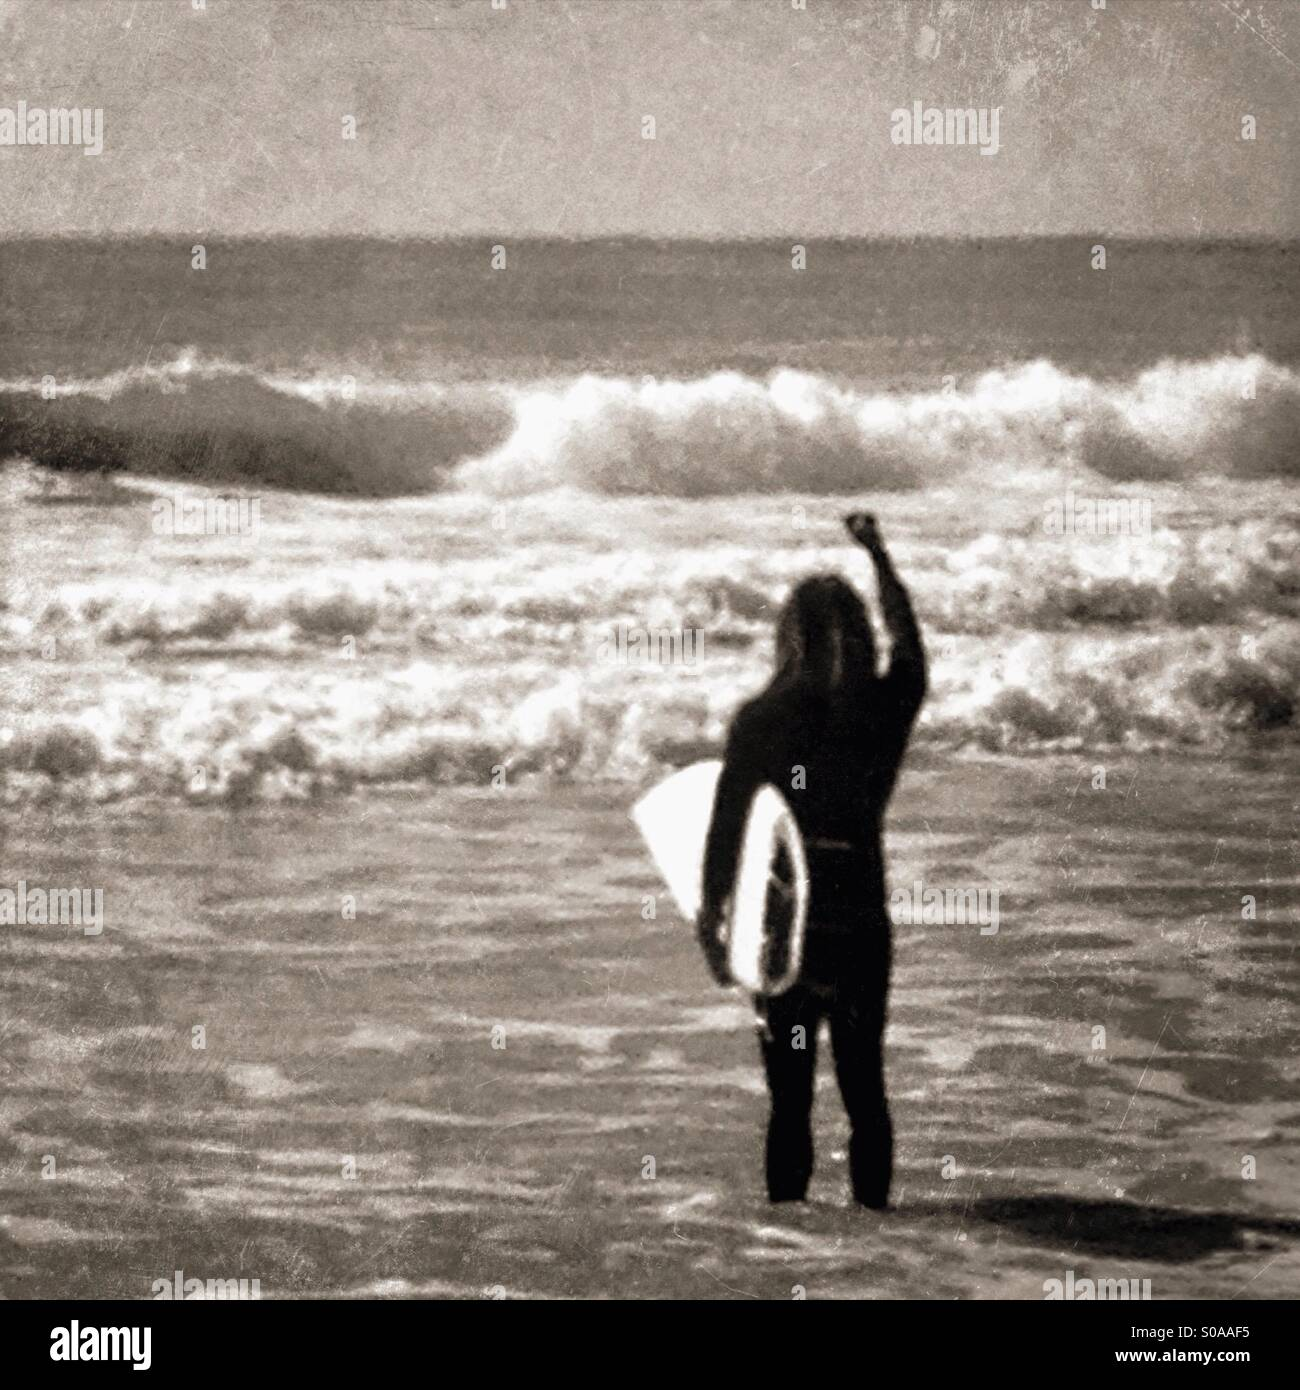 Excited surfer looking out at the waves. - Stock Image